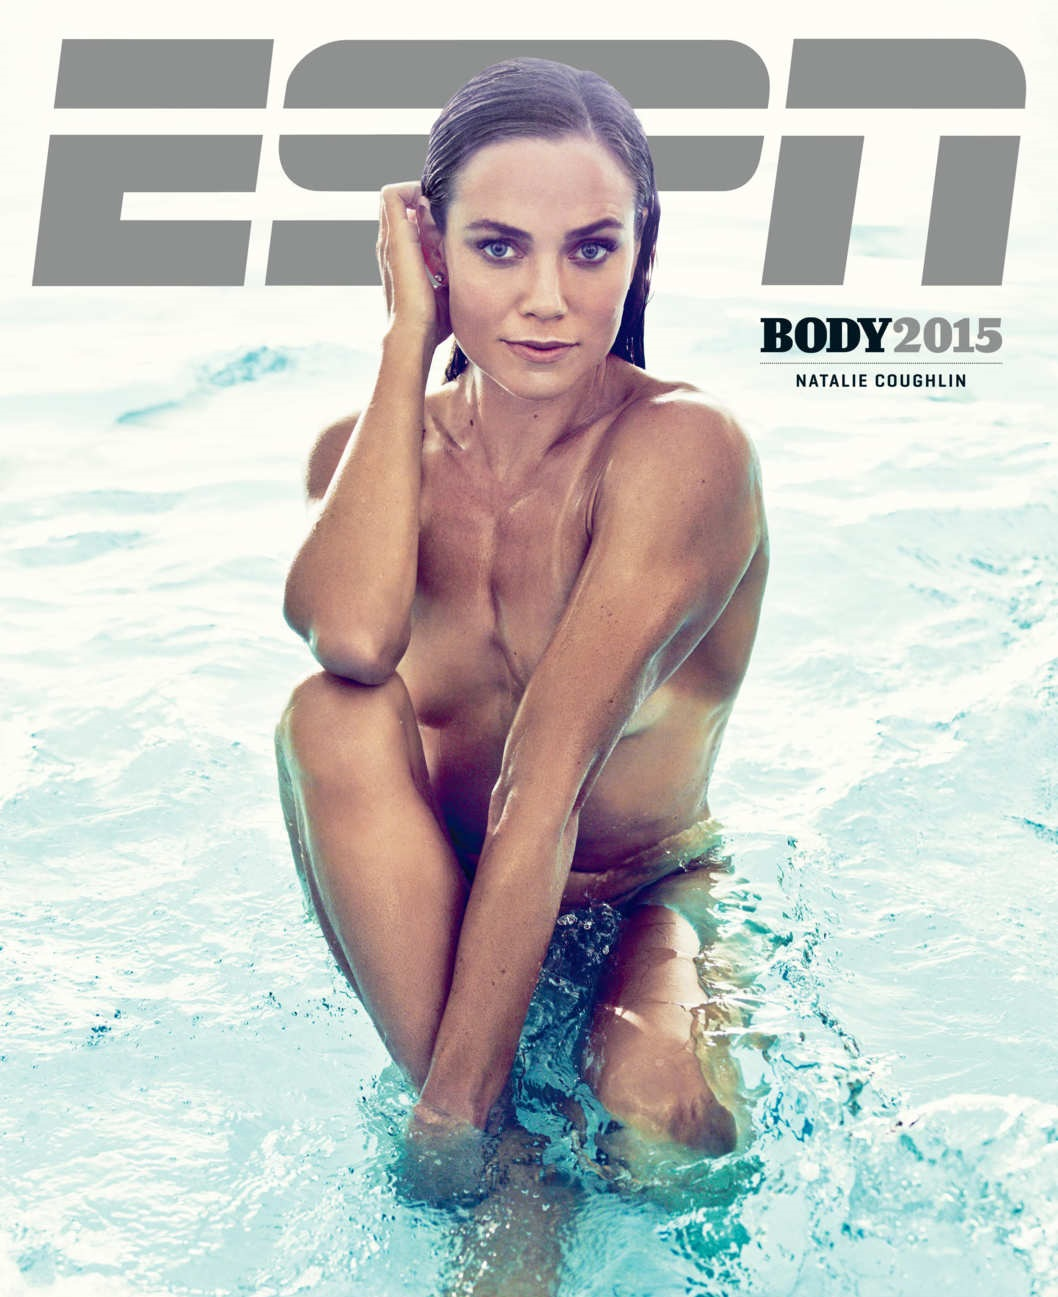 Live Nude Girls Top 20 Naked Celebrity Magazine Covers Of 2015